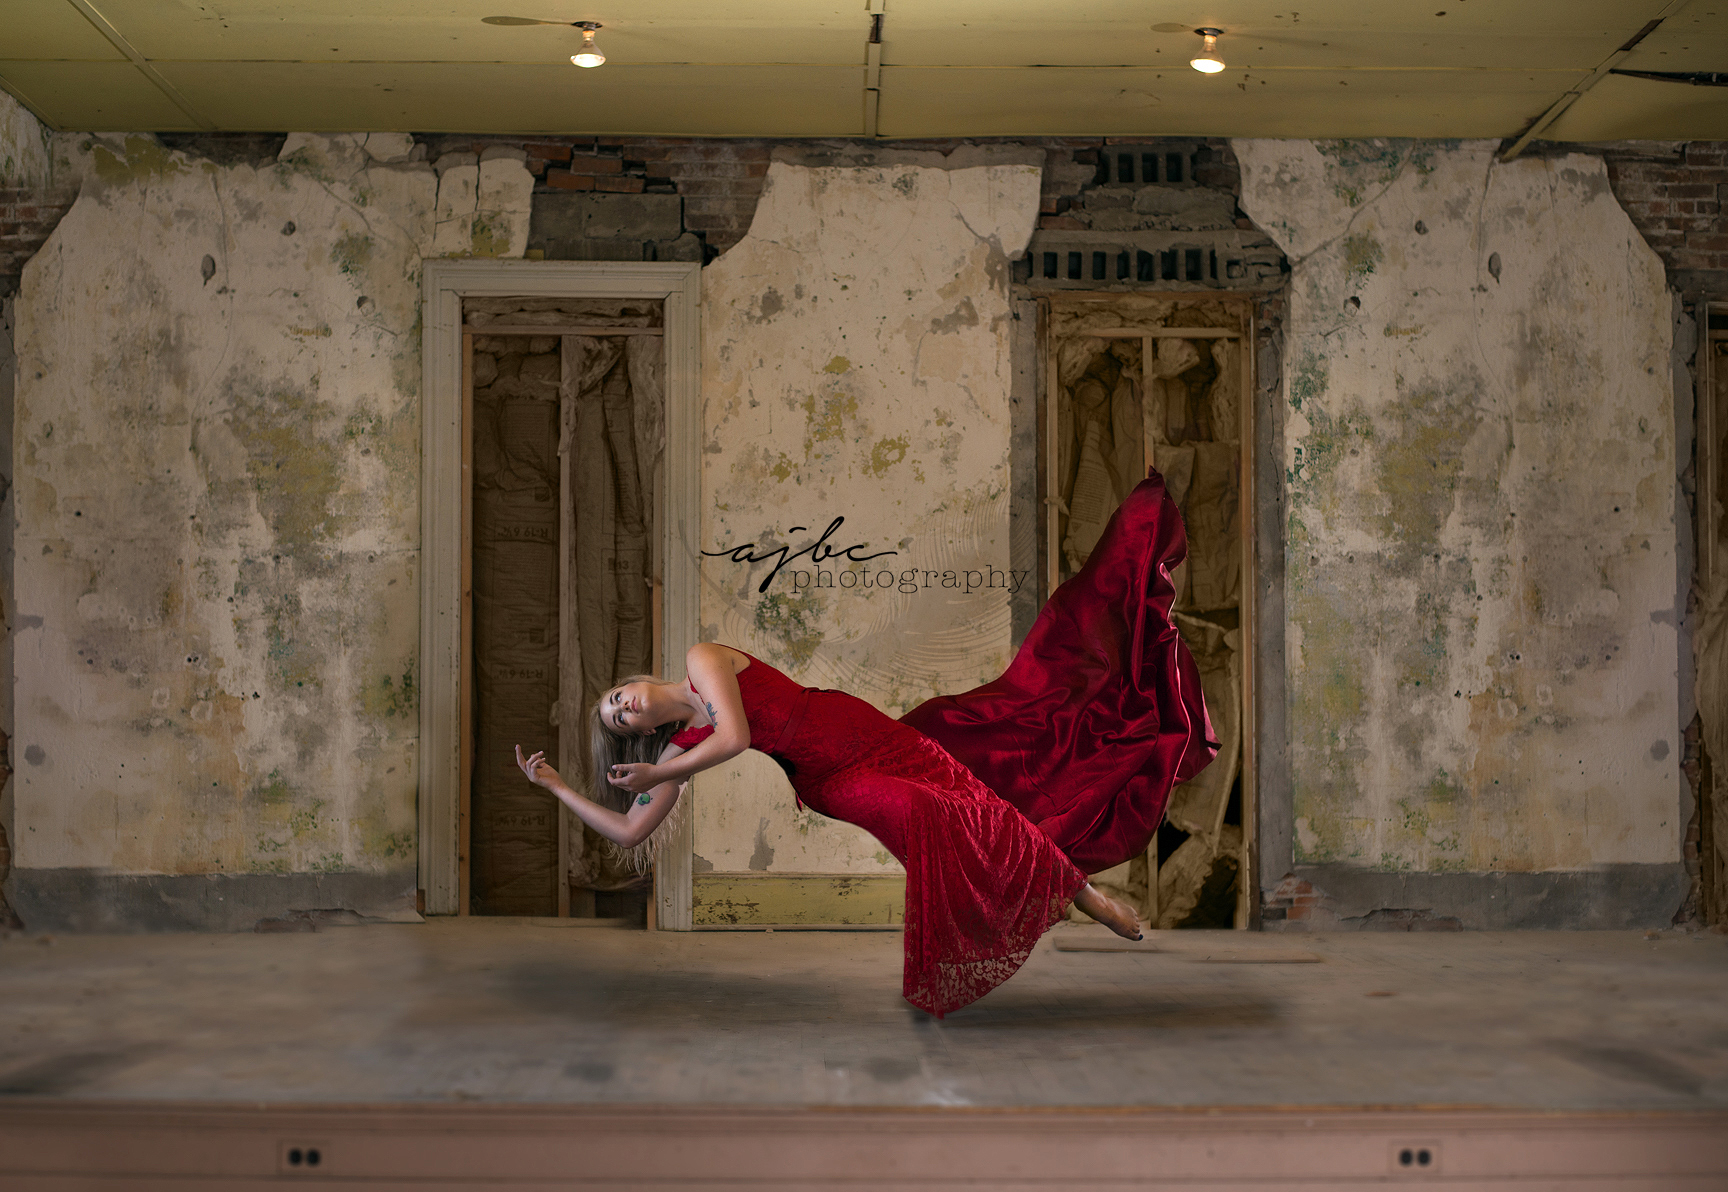 Before and After Photoshop Work Levitation Photography Editing